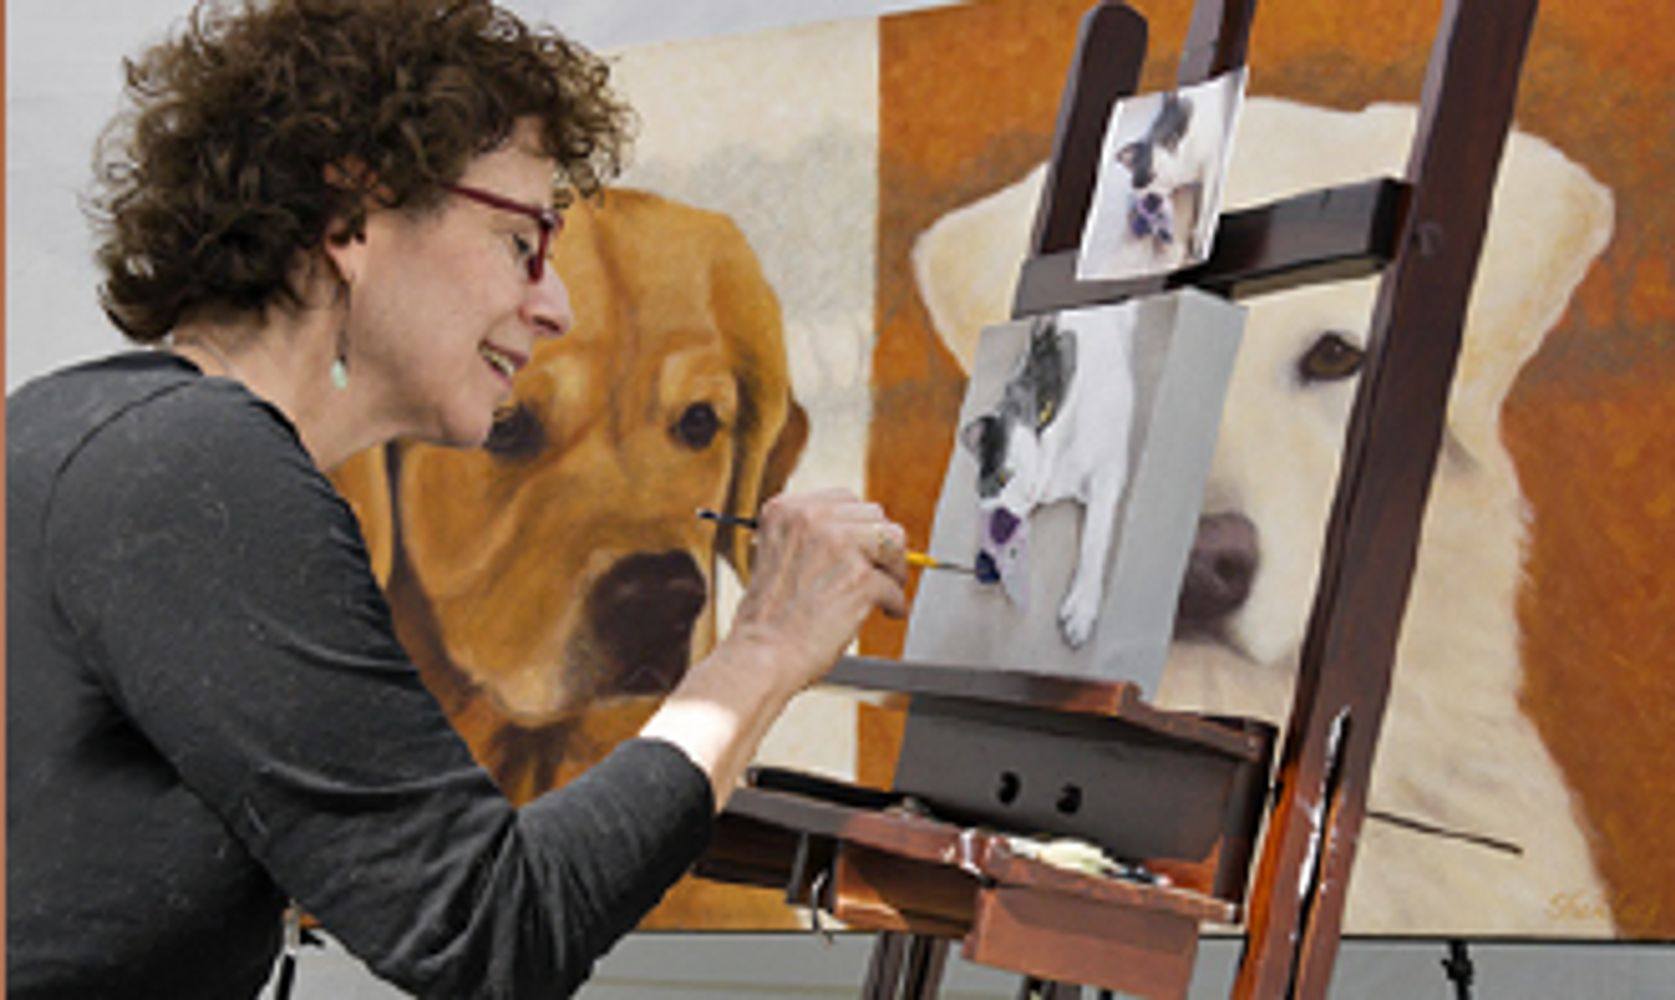 Shelley Lowell painting a portrait  of a cat with her painting of dogs  in the background.